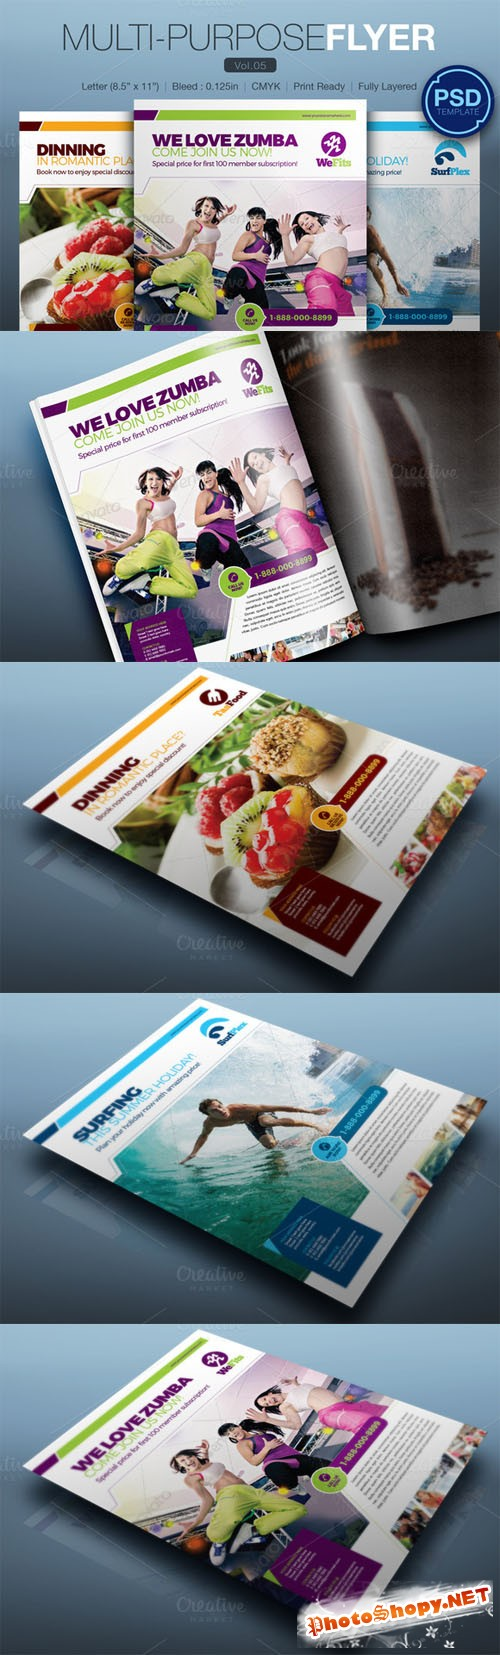 Multipurpose Flyer Vol.05 - Creativemarket 159543